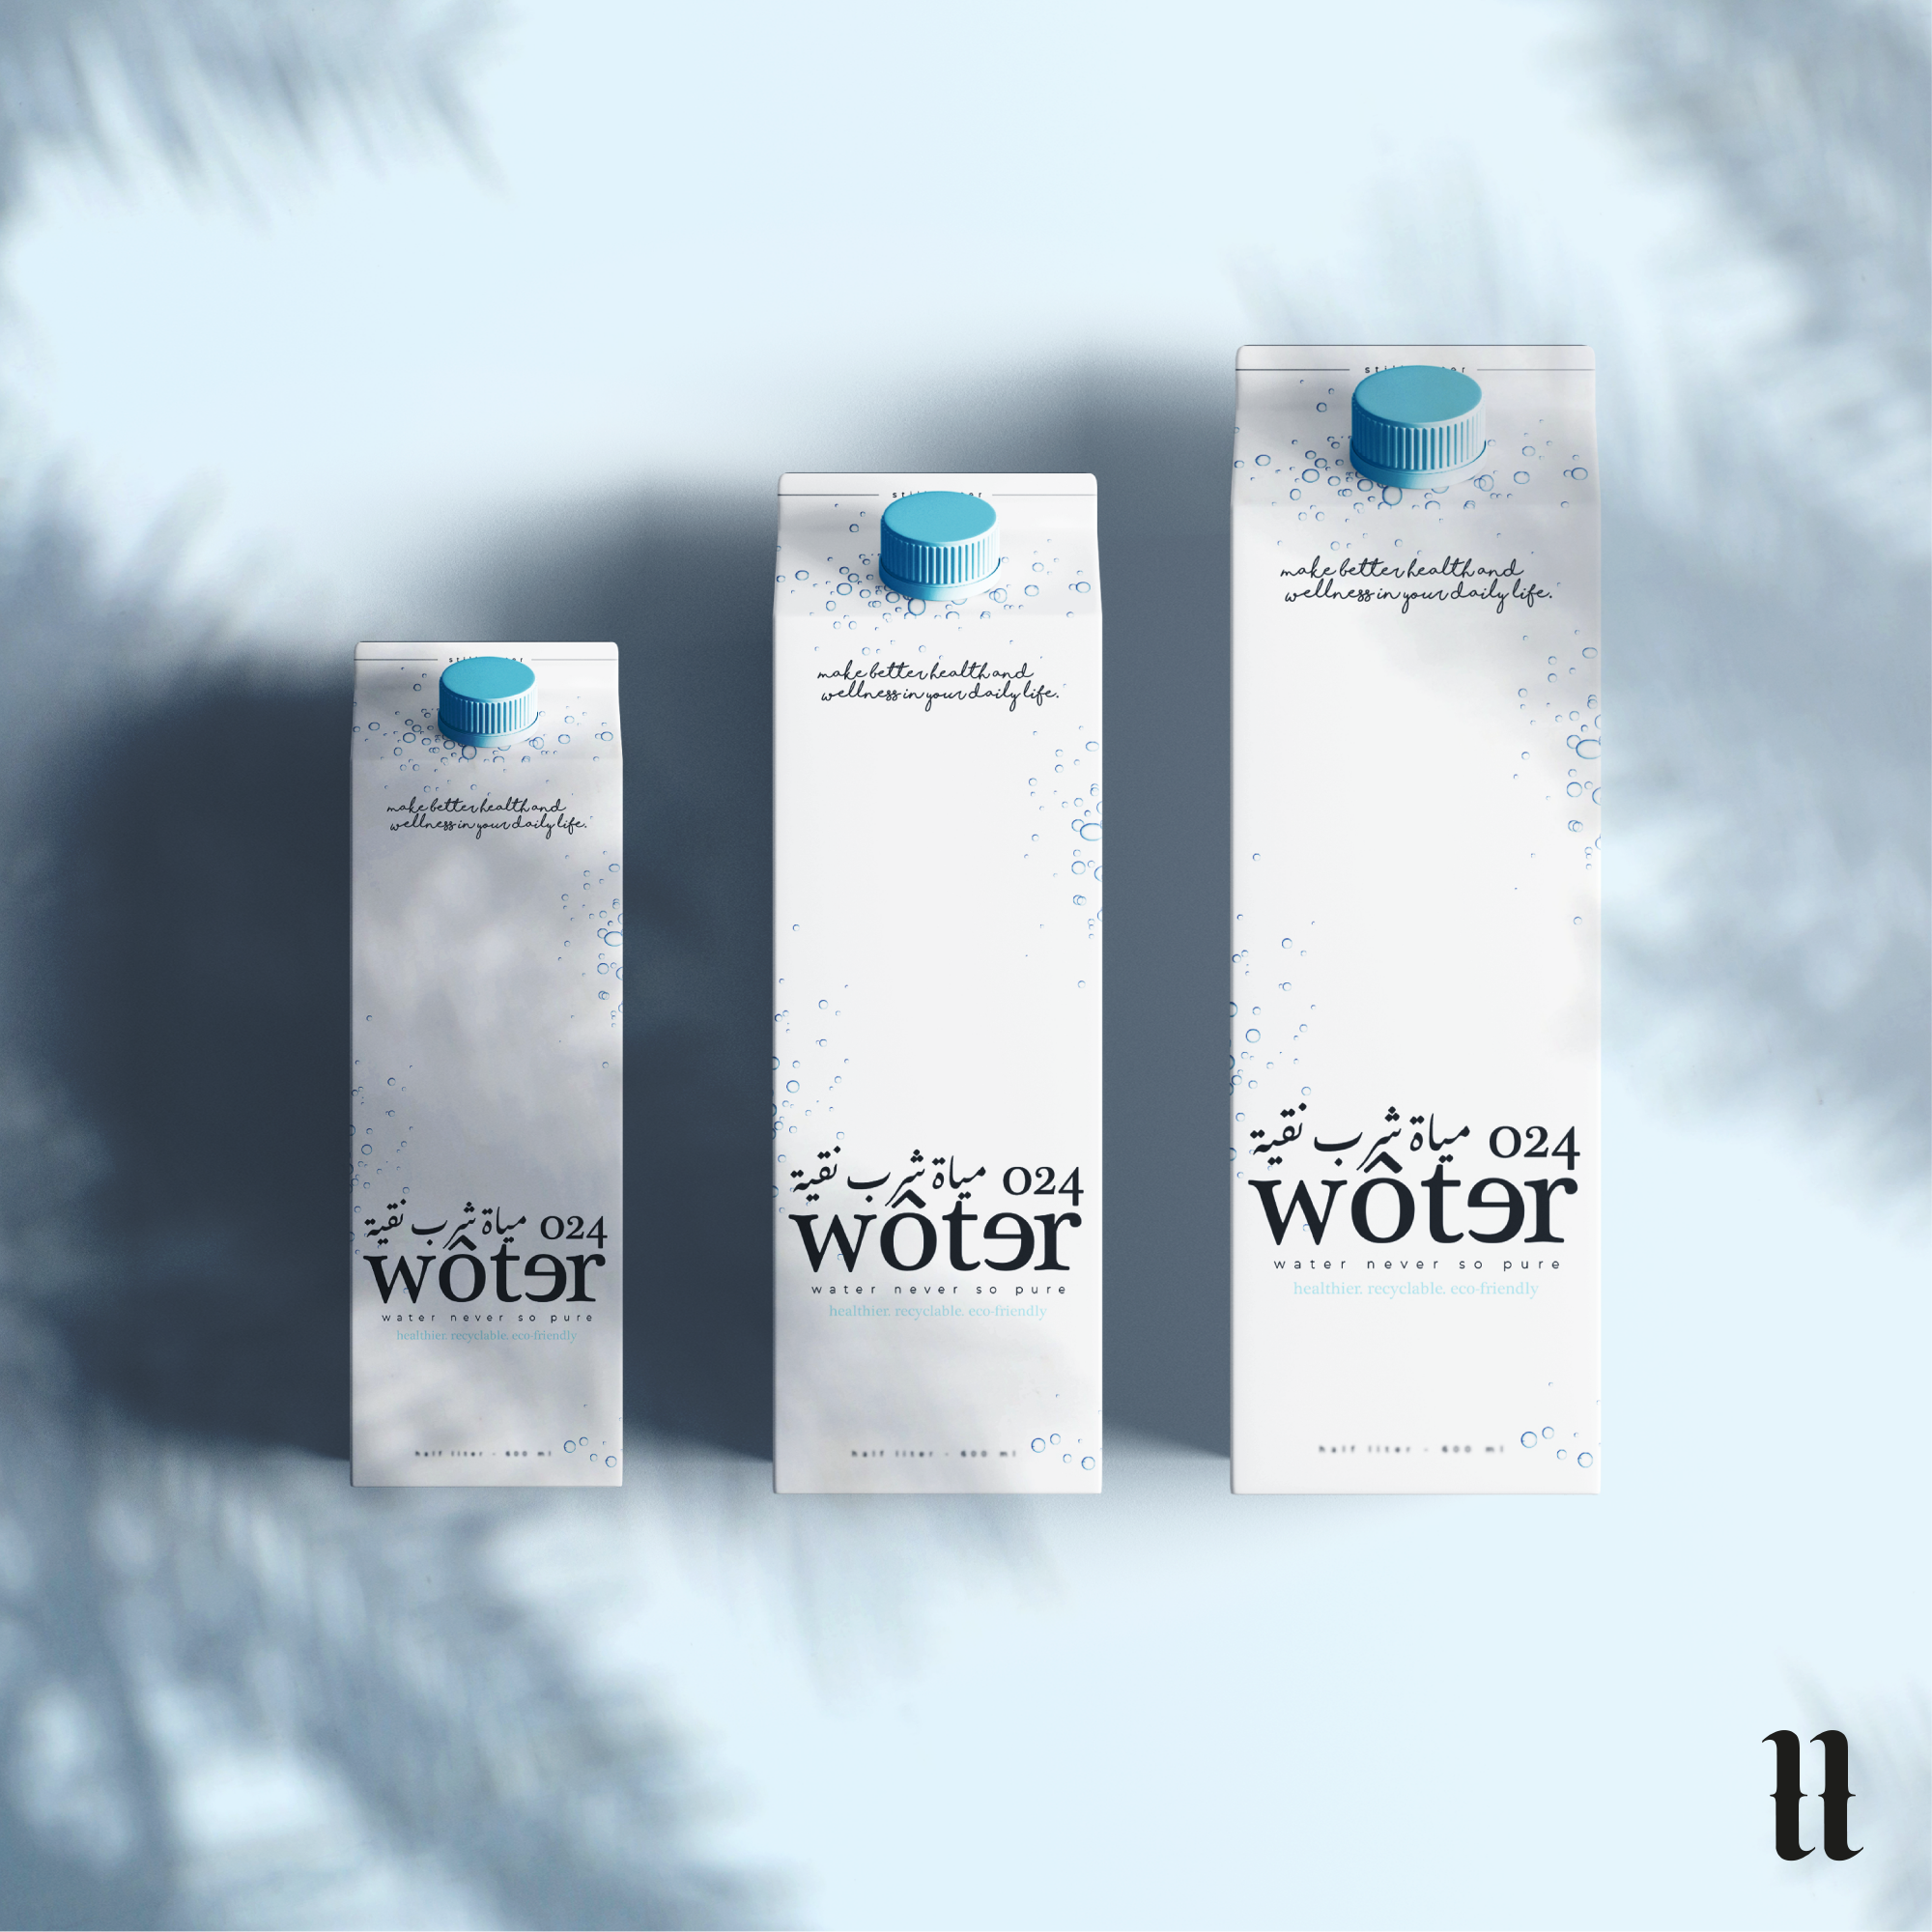 Wôter is a New Boxed Water Concept, for the First Time in Egypt and the Middle East